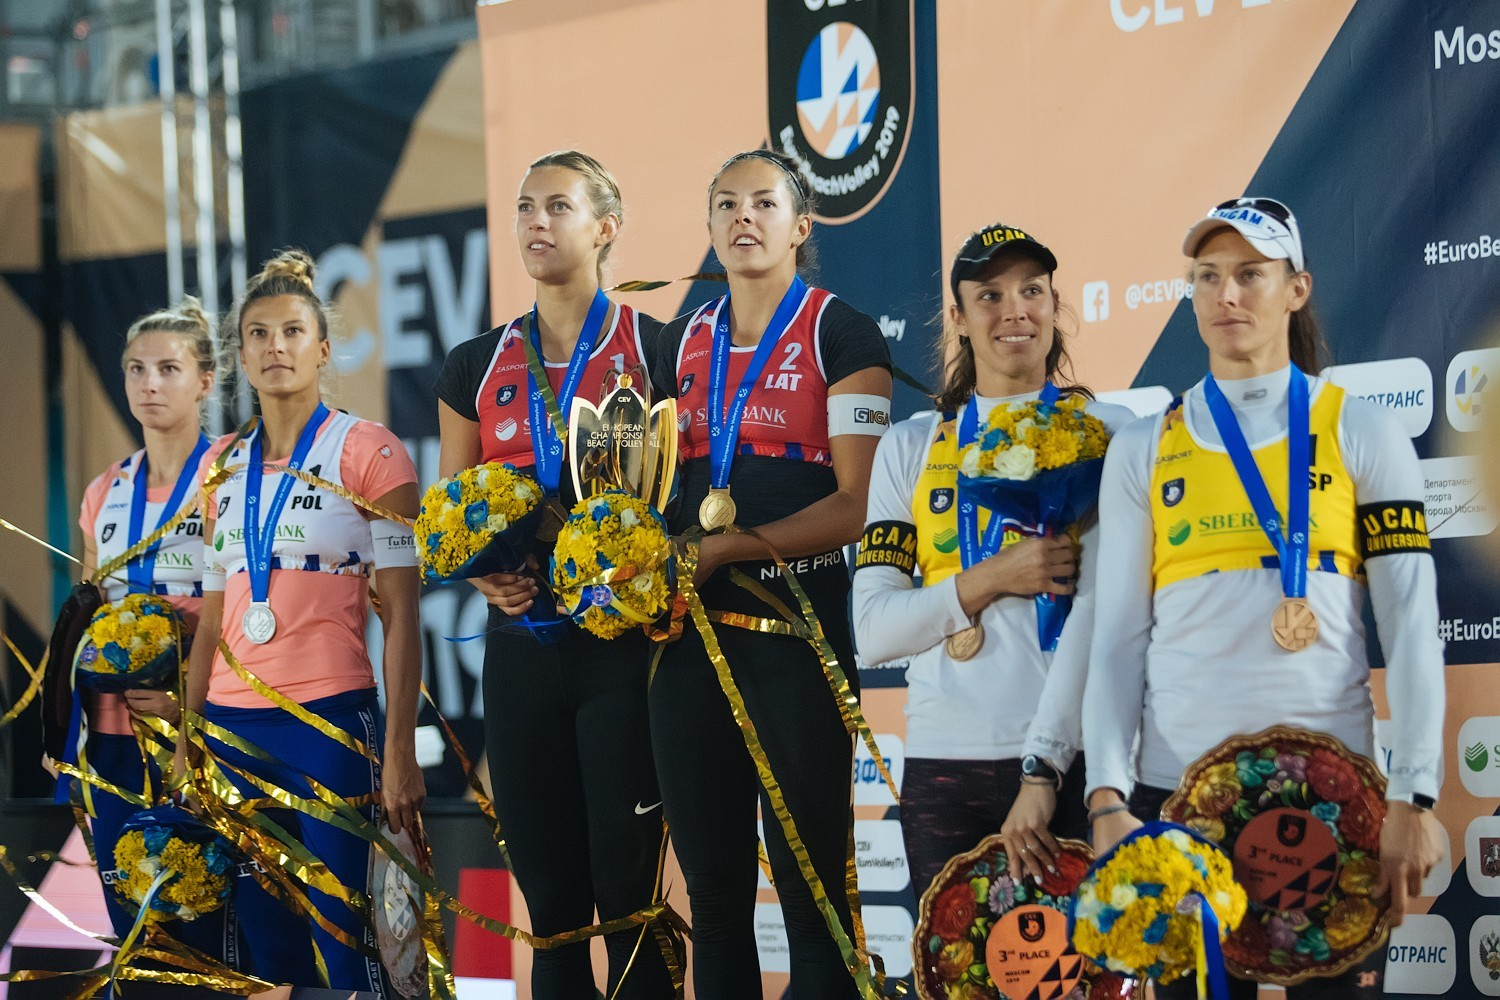 The medalists of the European Championships (Photocredit: CEV)